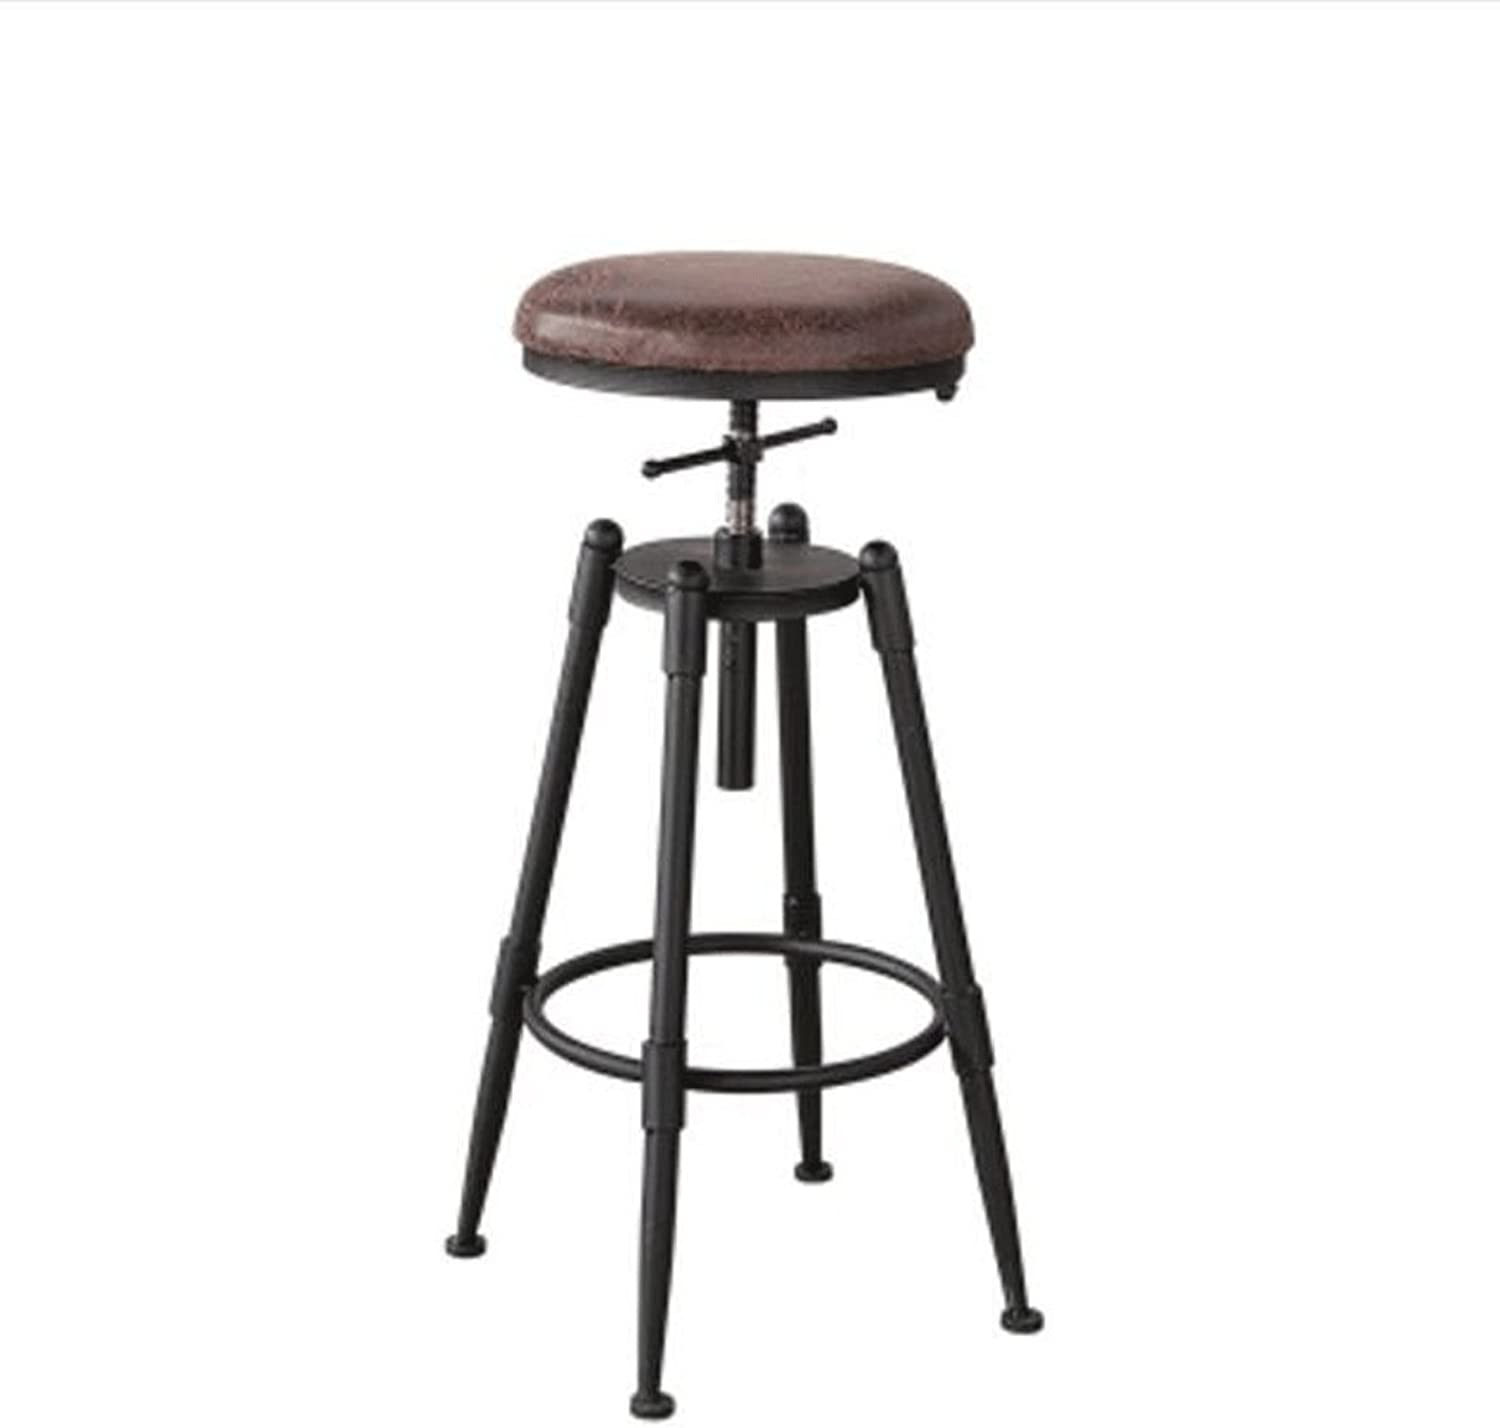 Barstool Bar Stool Adjustable Seat Height (68-90cm) Solid Wood Iron Bar Chairs American Retro Bar Chair High Chair Coffee Chair Lounge Chair (color   Soft Cushion, Size   A)